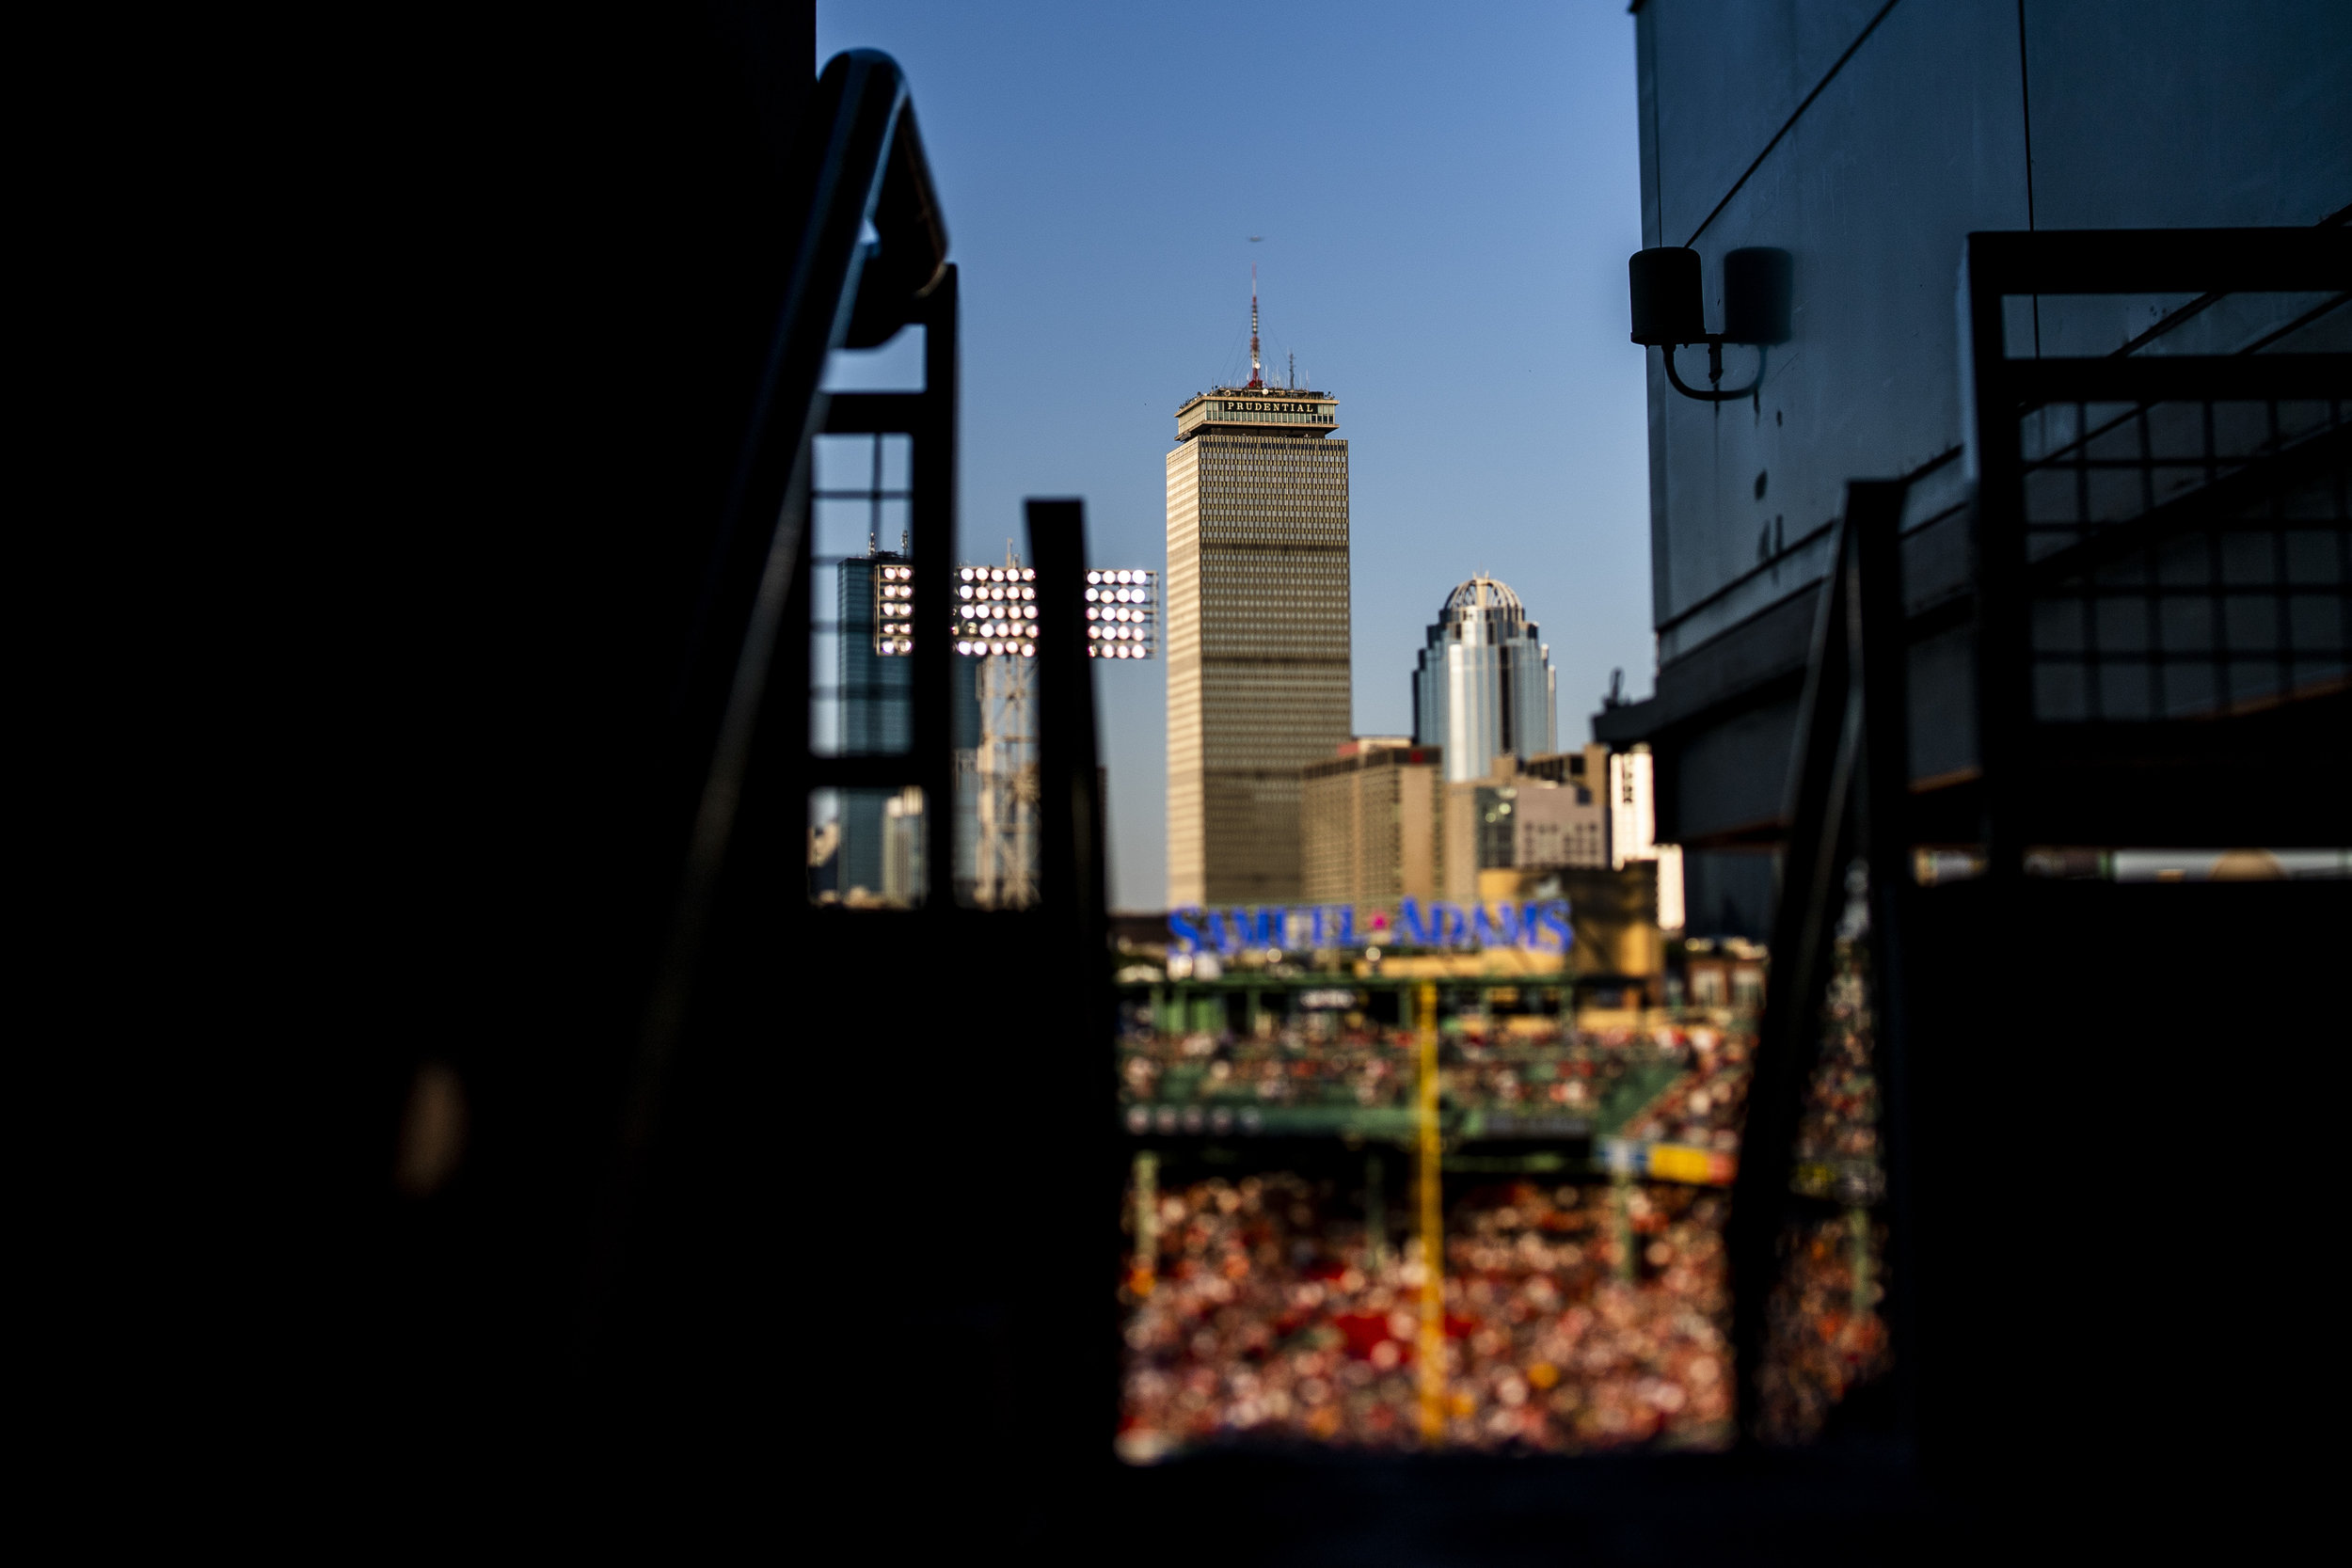 July 8, 2018, Boston, MA: The Prudential Center as the Boston Red Sox face the Texas Rangers Fenway Park in Boston, Massachusetts on Monday, July 9, 2018. (Photo by Matthew Thomas/Boston Red Sox)